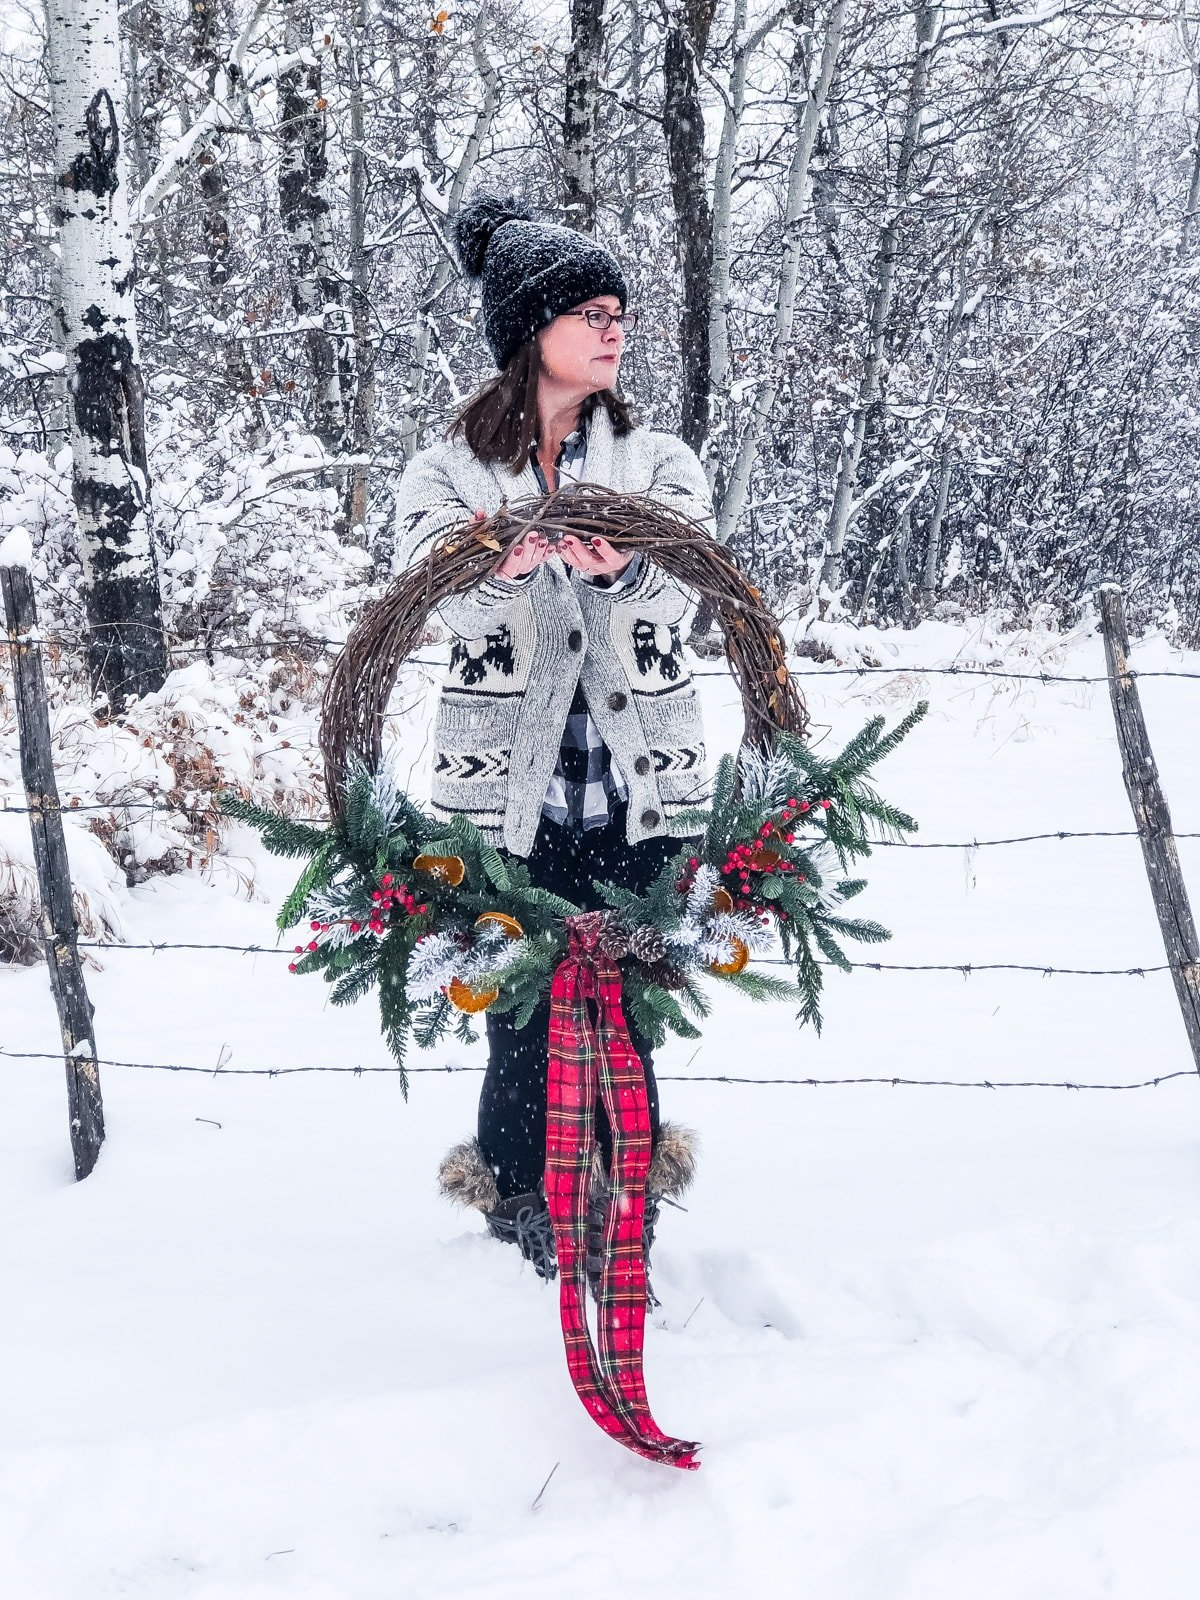 A woman holding a giant Christmas wreath while out in a snowy forest